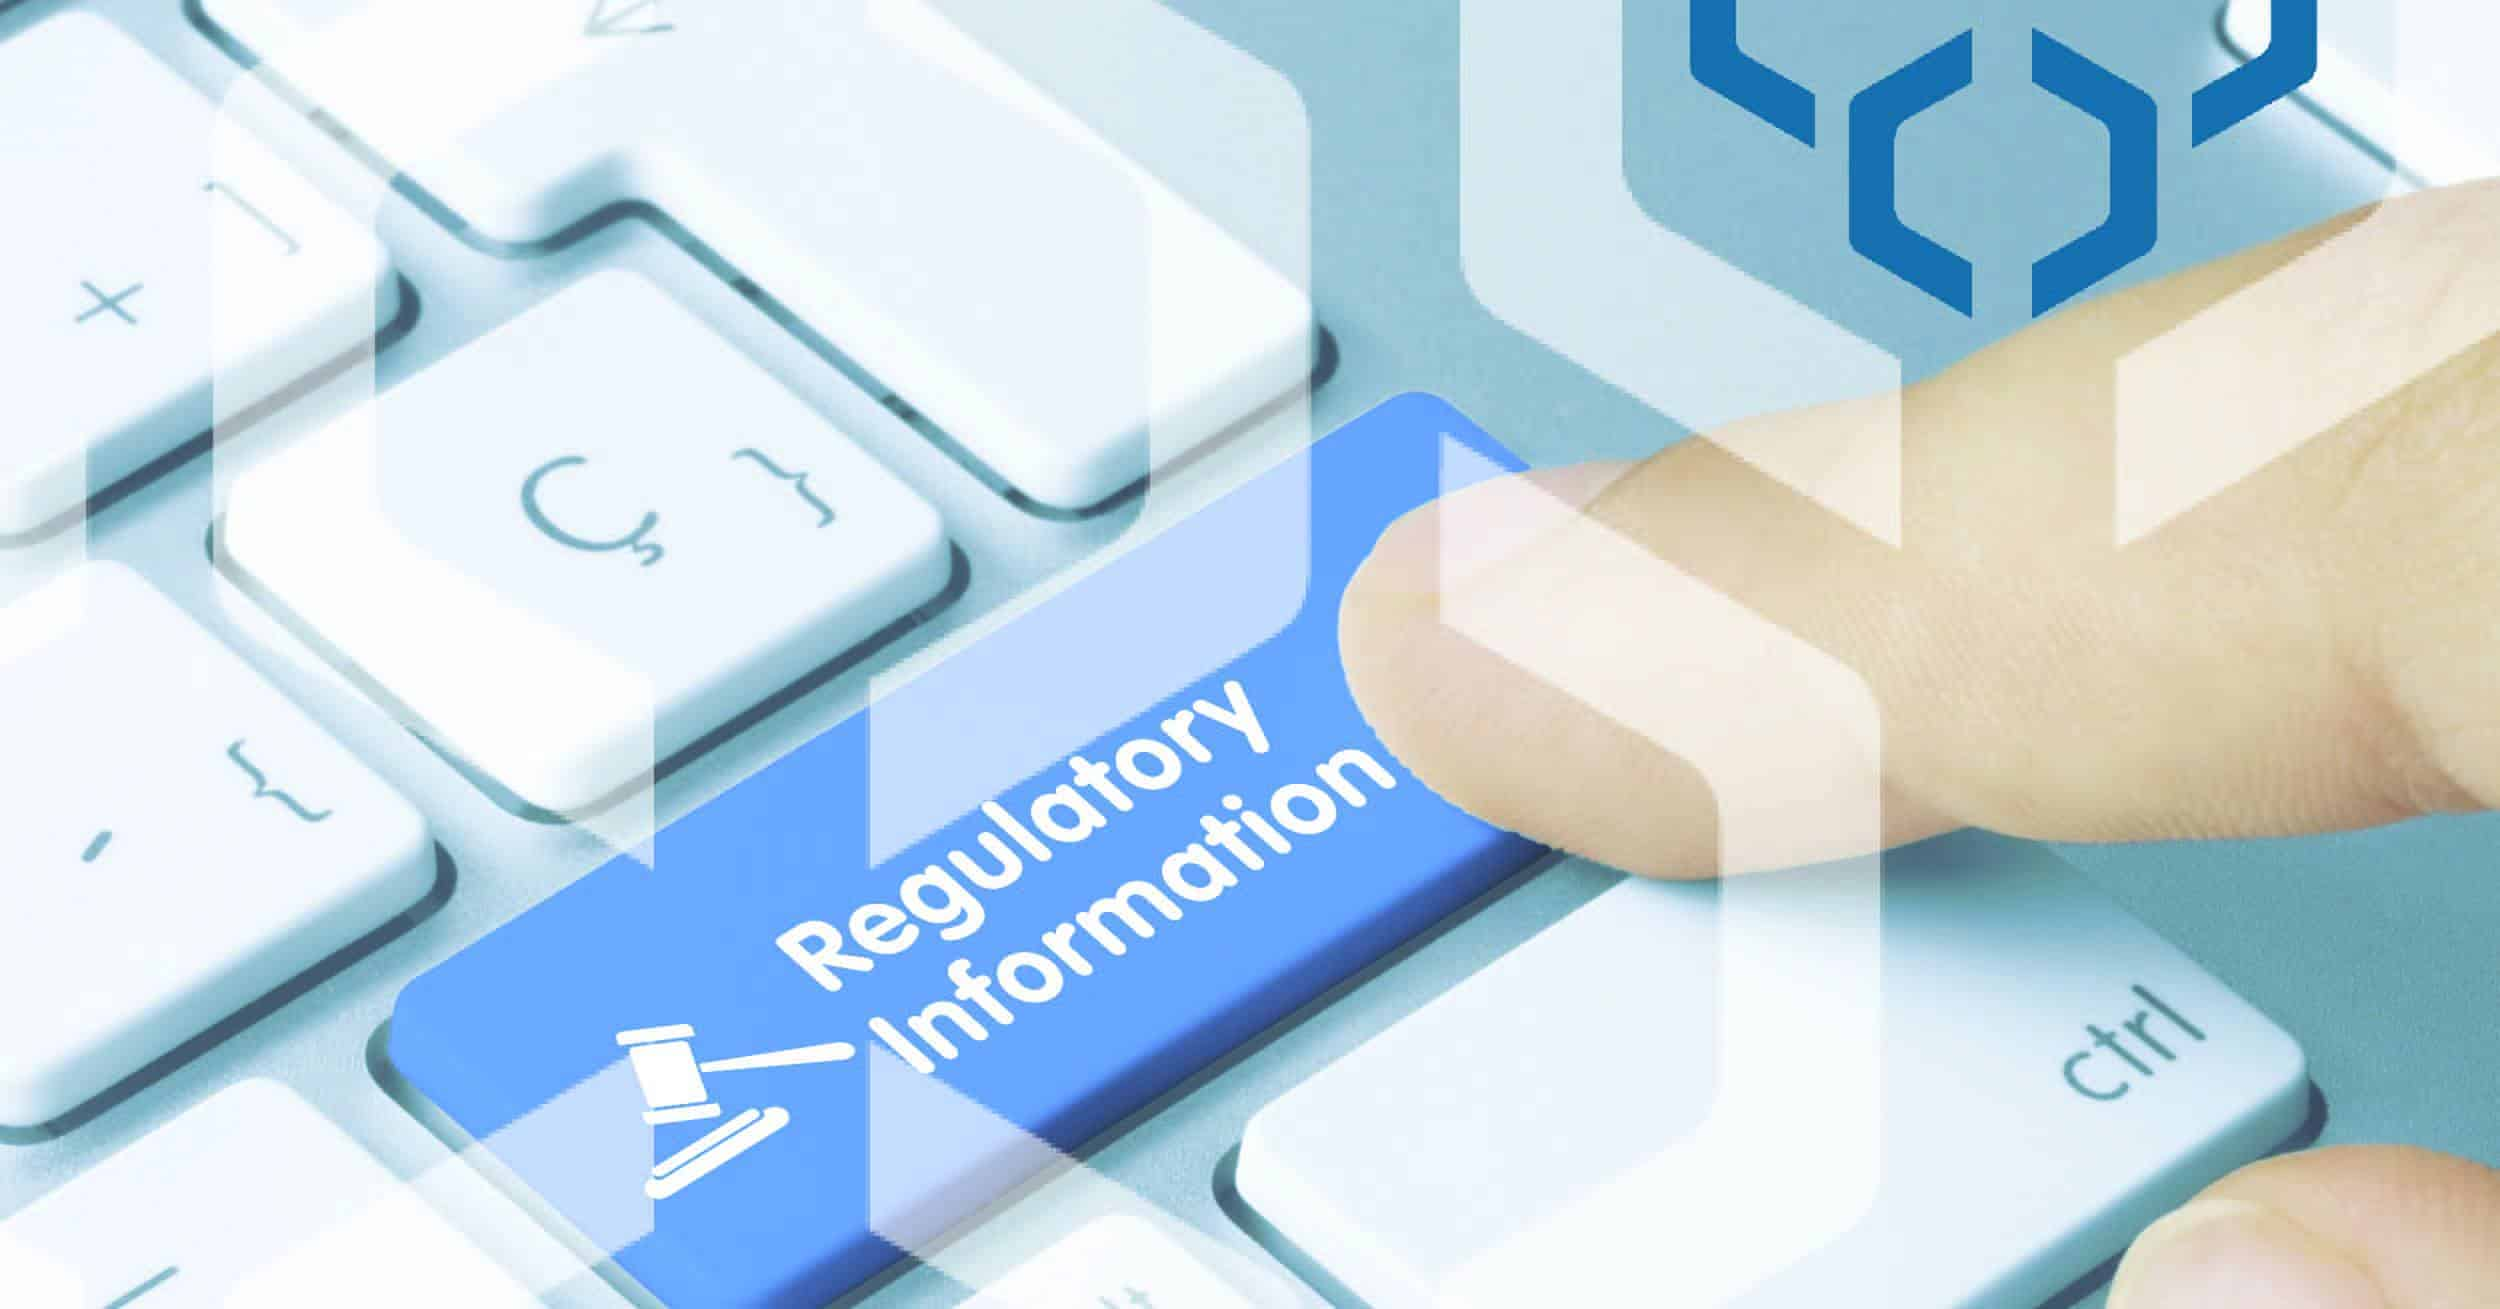 The main goal for any drug company is achieving a speedy path to market. While many obstacles threaten that goal, the regulatory process is one of the most challenging hurdles you'll face.